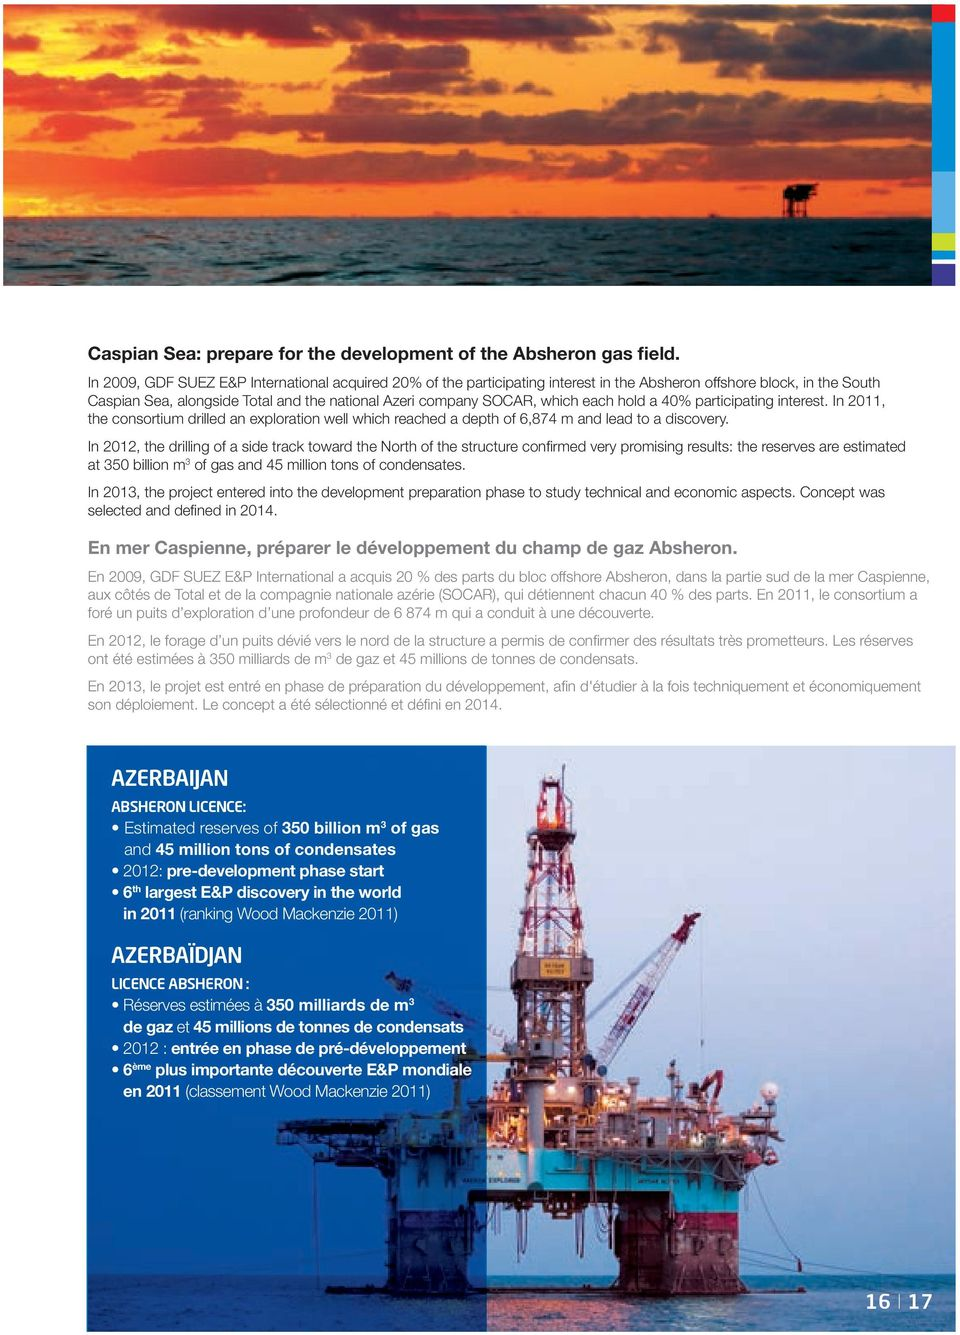 each hold a 40% participating interest. In 2011, the consortium drilled an exploration well which reached a depth of 6,874 m and lead to a discovery.